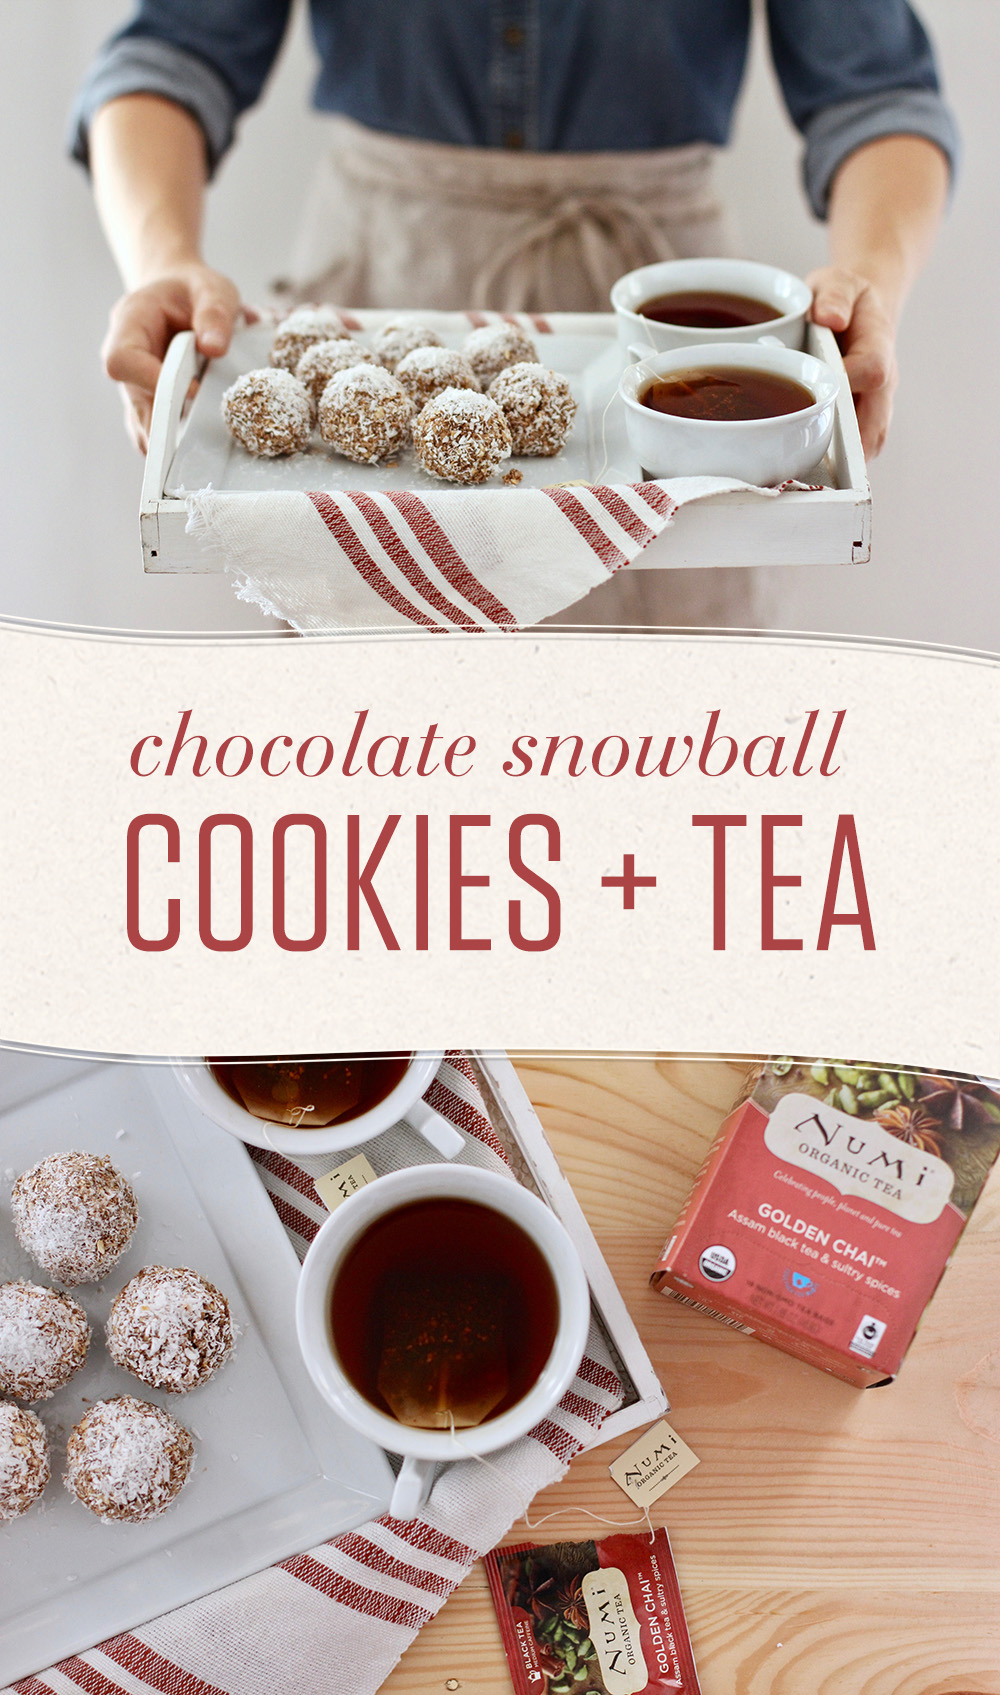 Create sweet memories with these no-bake Chocolate Snowball Cookies. They're easy to make and pair beautifully with our Golden Chai tea.